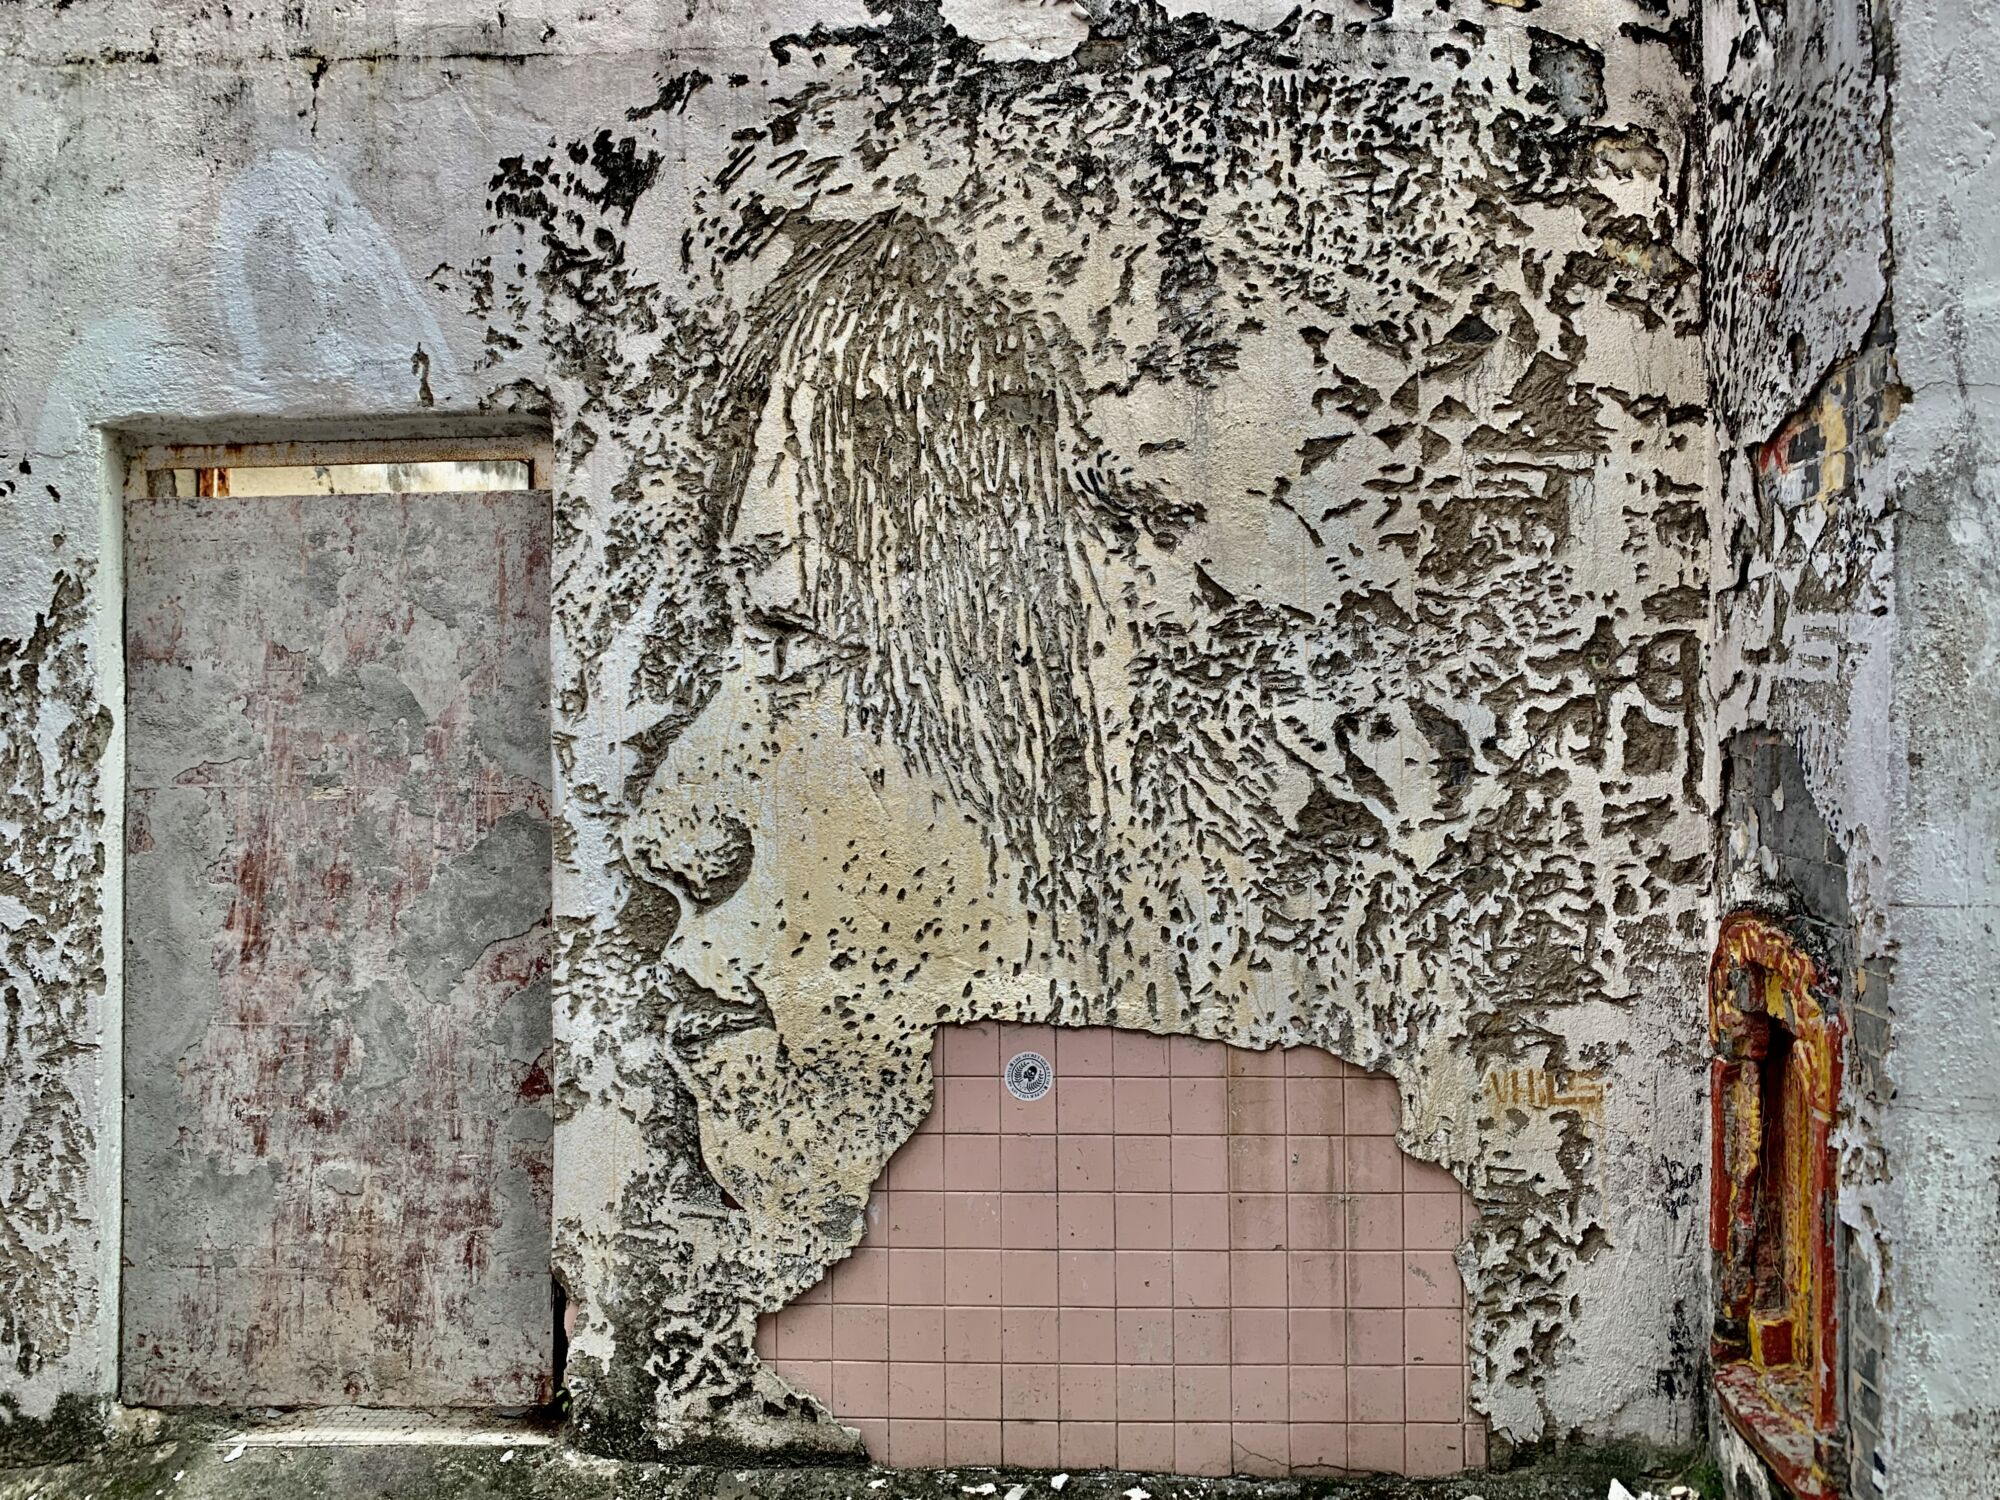 Vhils Wall Art Piece Rua dos Clerigos Taipa Village Macau Lifestyle